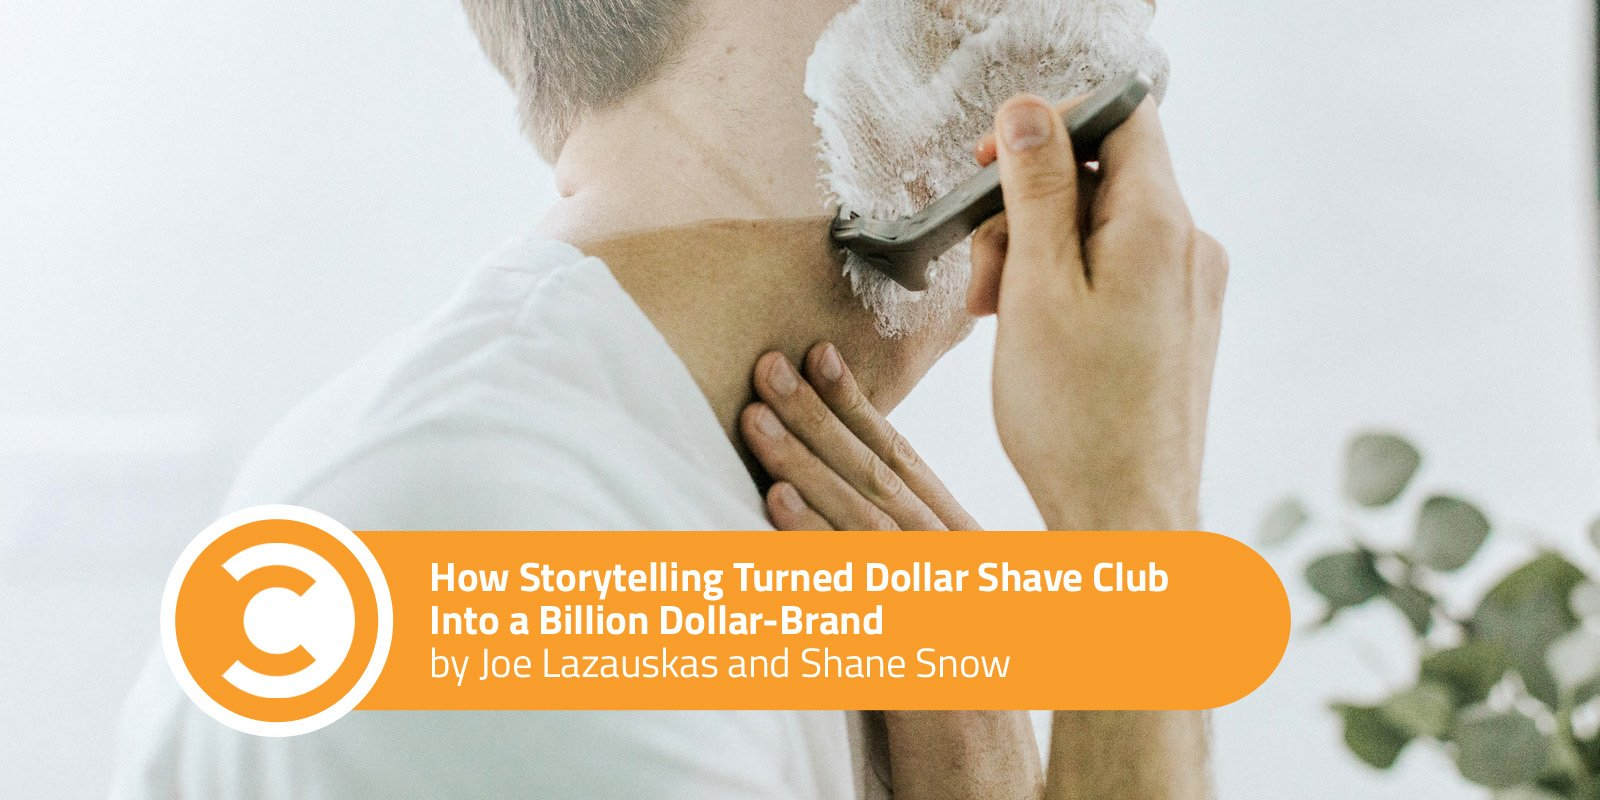 How Storytelling Turned Dollar Shave Club Into a Billion Dollar-Brand